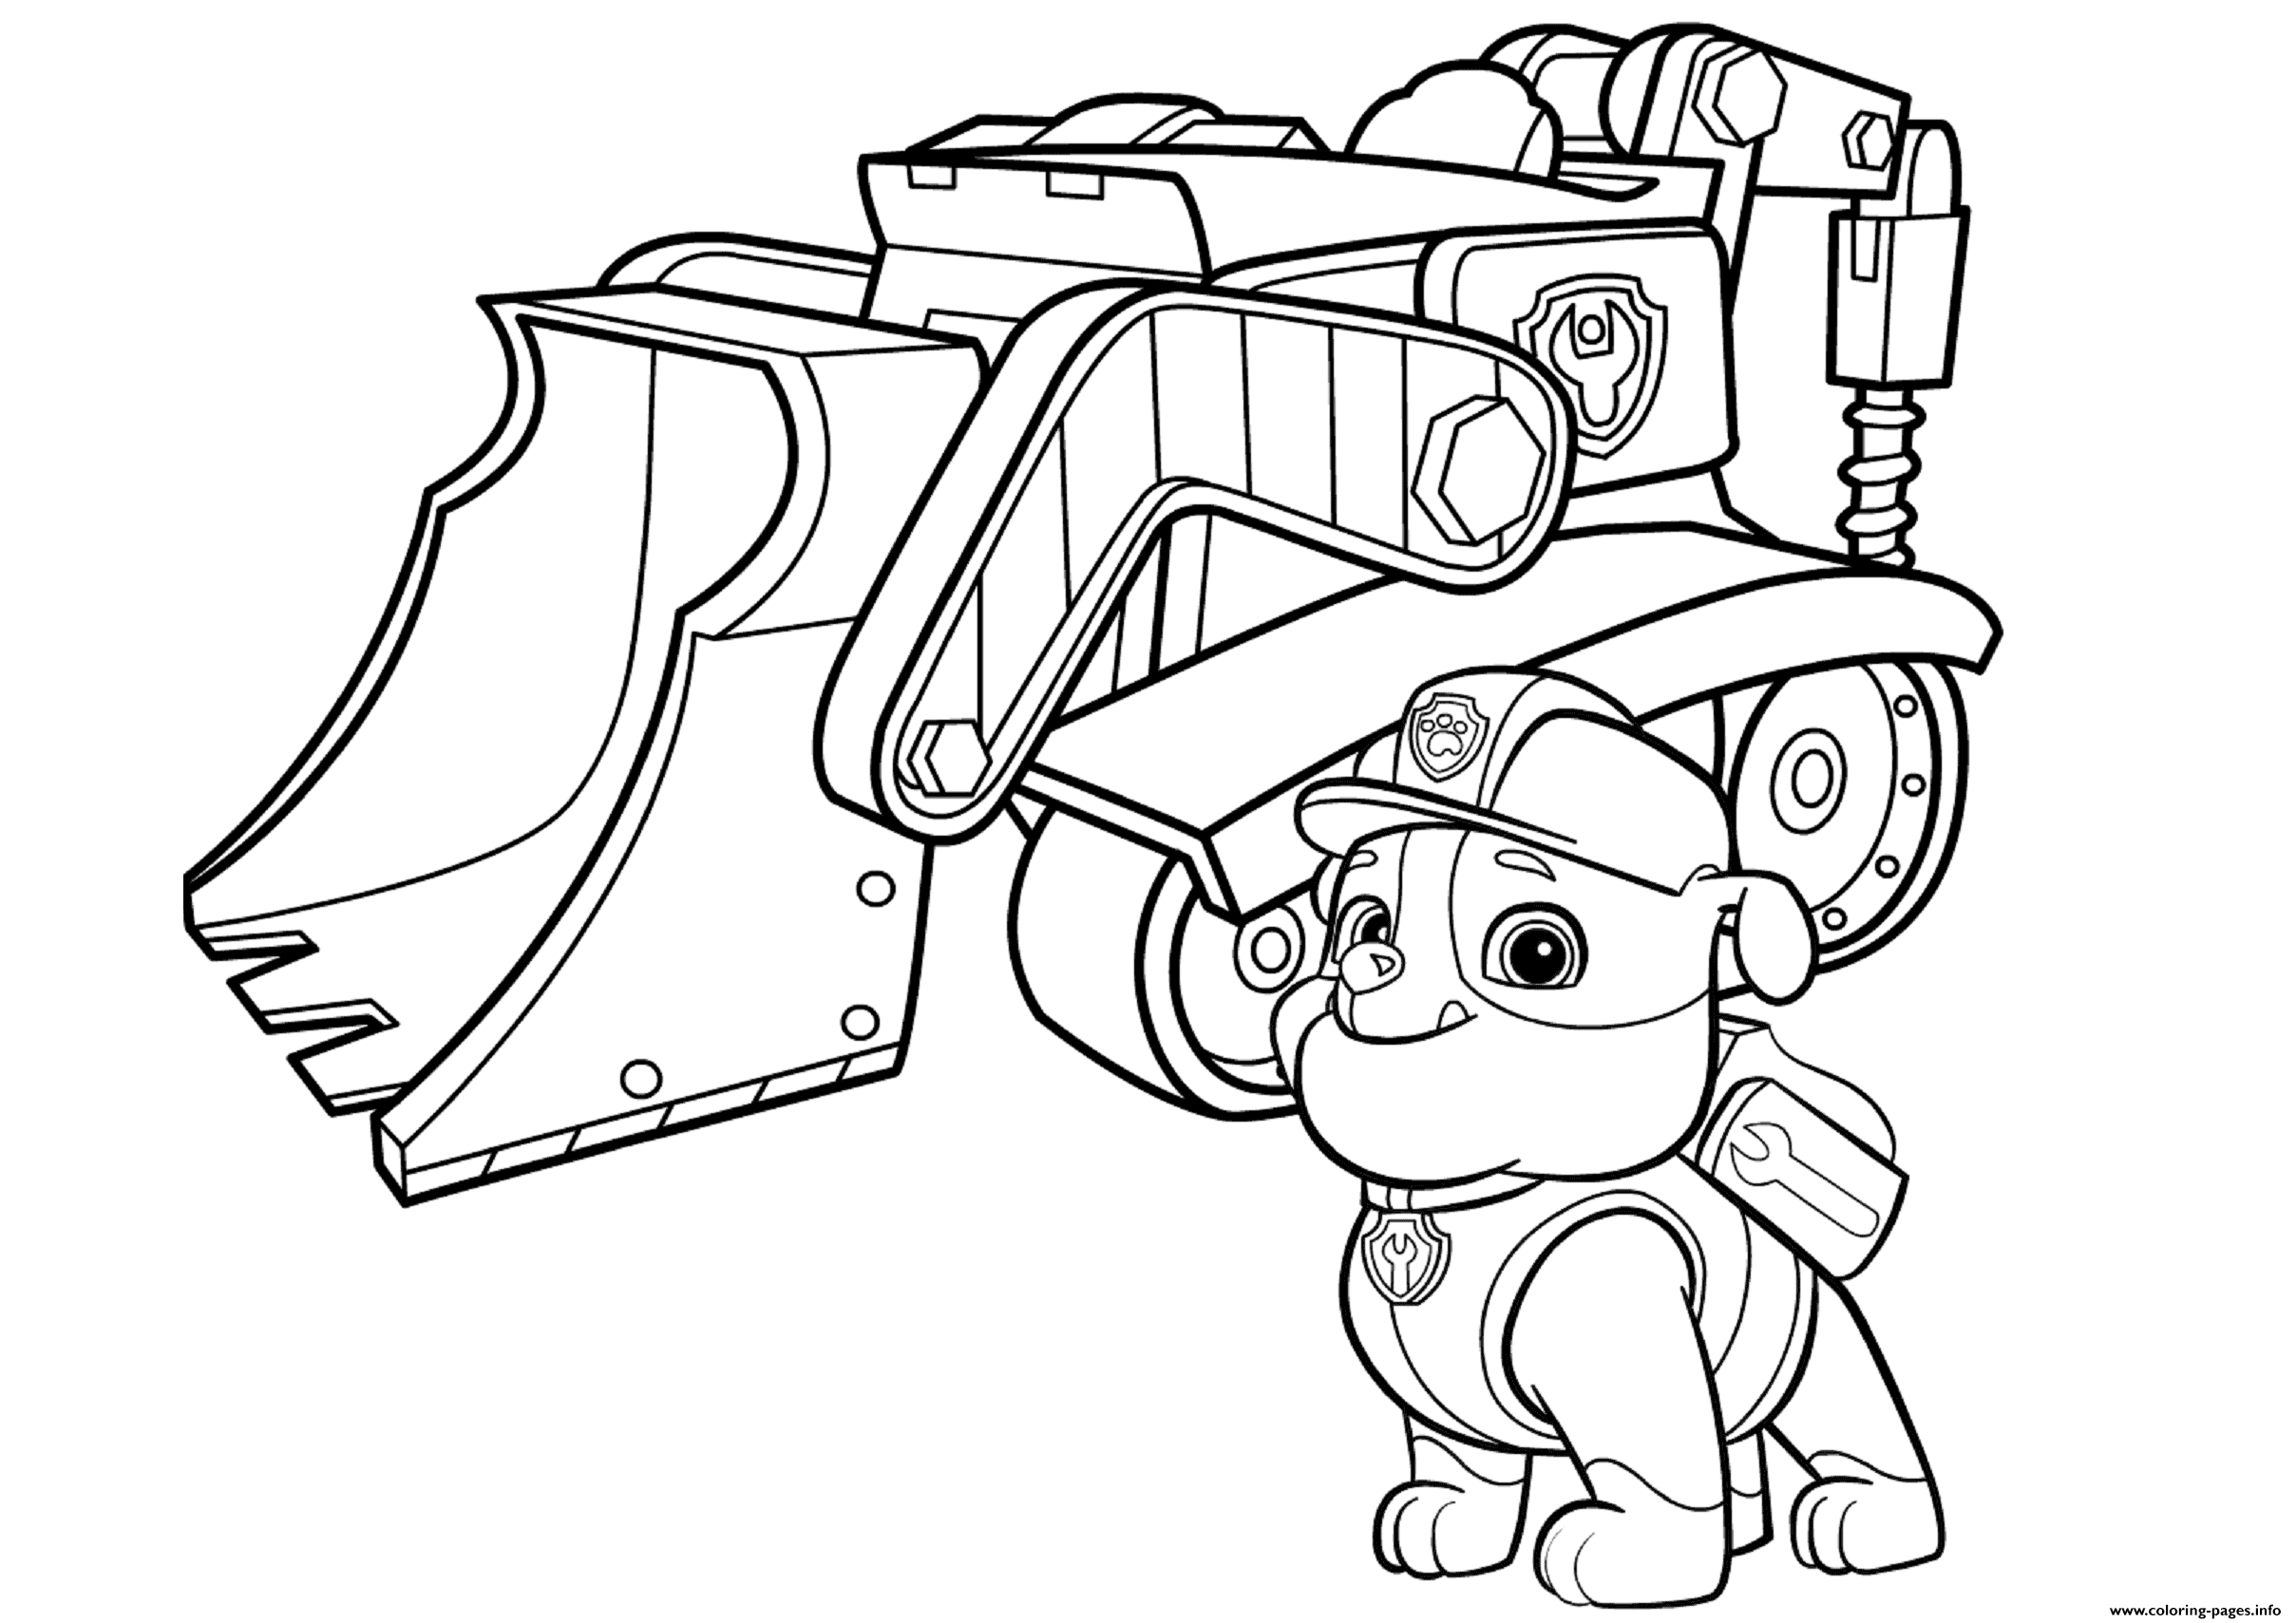 pics of paw patrol paw patrol coloring pages free paw patrol coloring pages patrol pics paw of